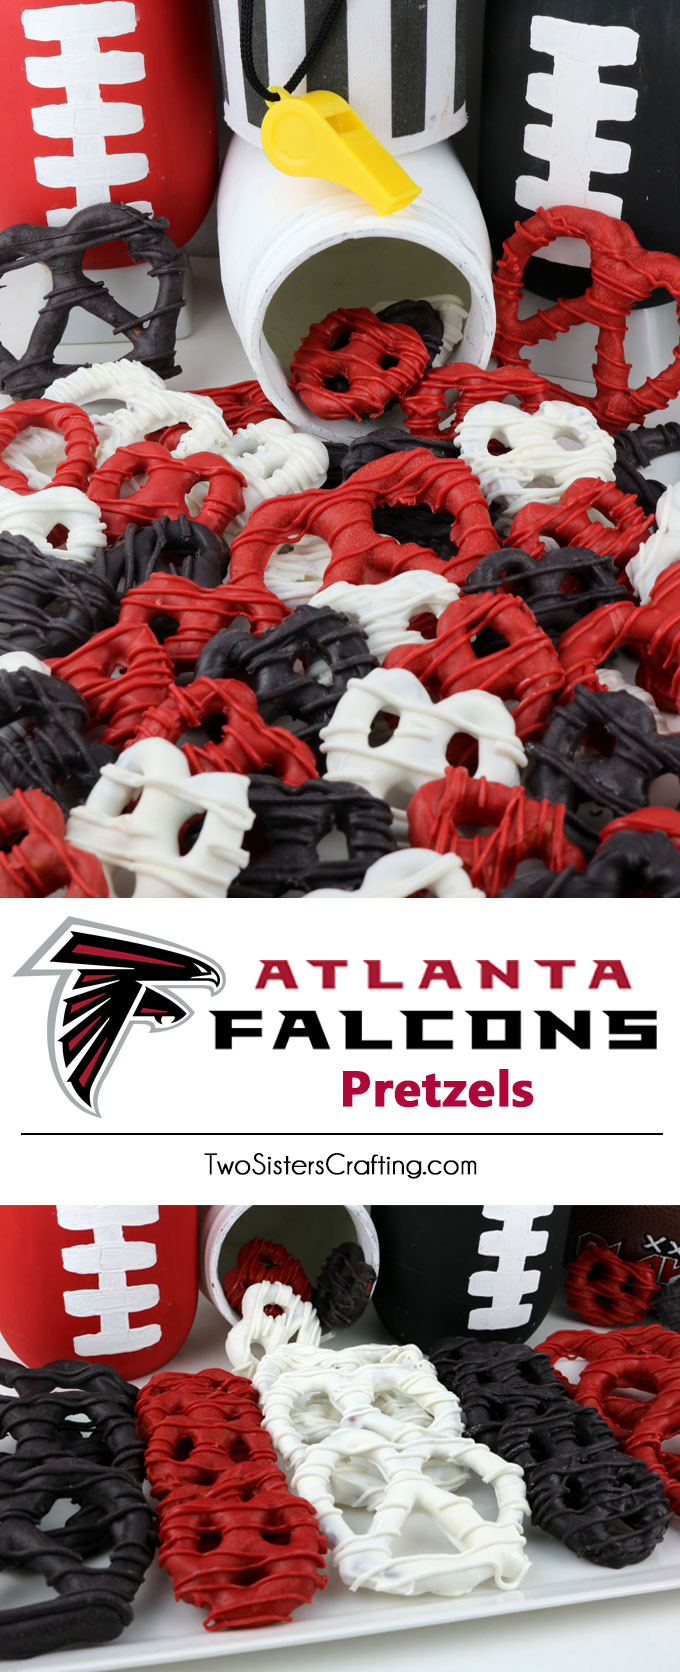 Atlanta Falcons Pretzels - yummy bites of sweet and salty Football Game Day goodness that are super easy to make. They are perfect as a little extra treat at a NFL playoff party, a Super Bowl party or as a special dessert for the Atlanta Falcons fan in your life. Follow us for more fun Super Bowl Food Ideas.